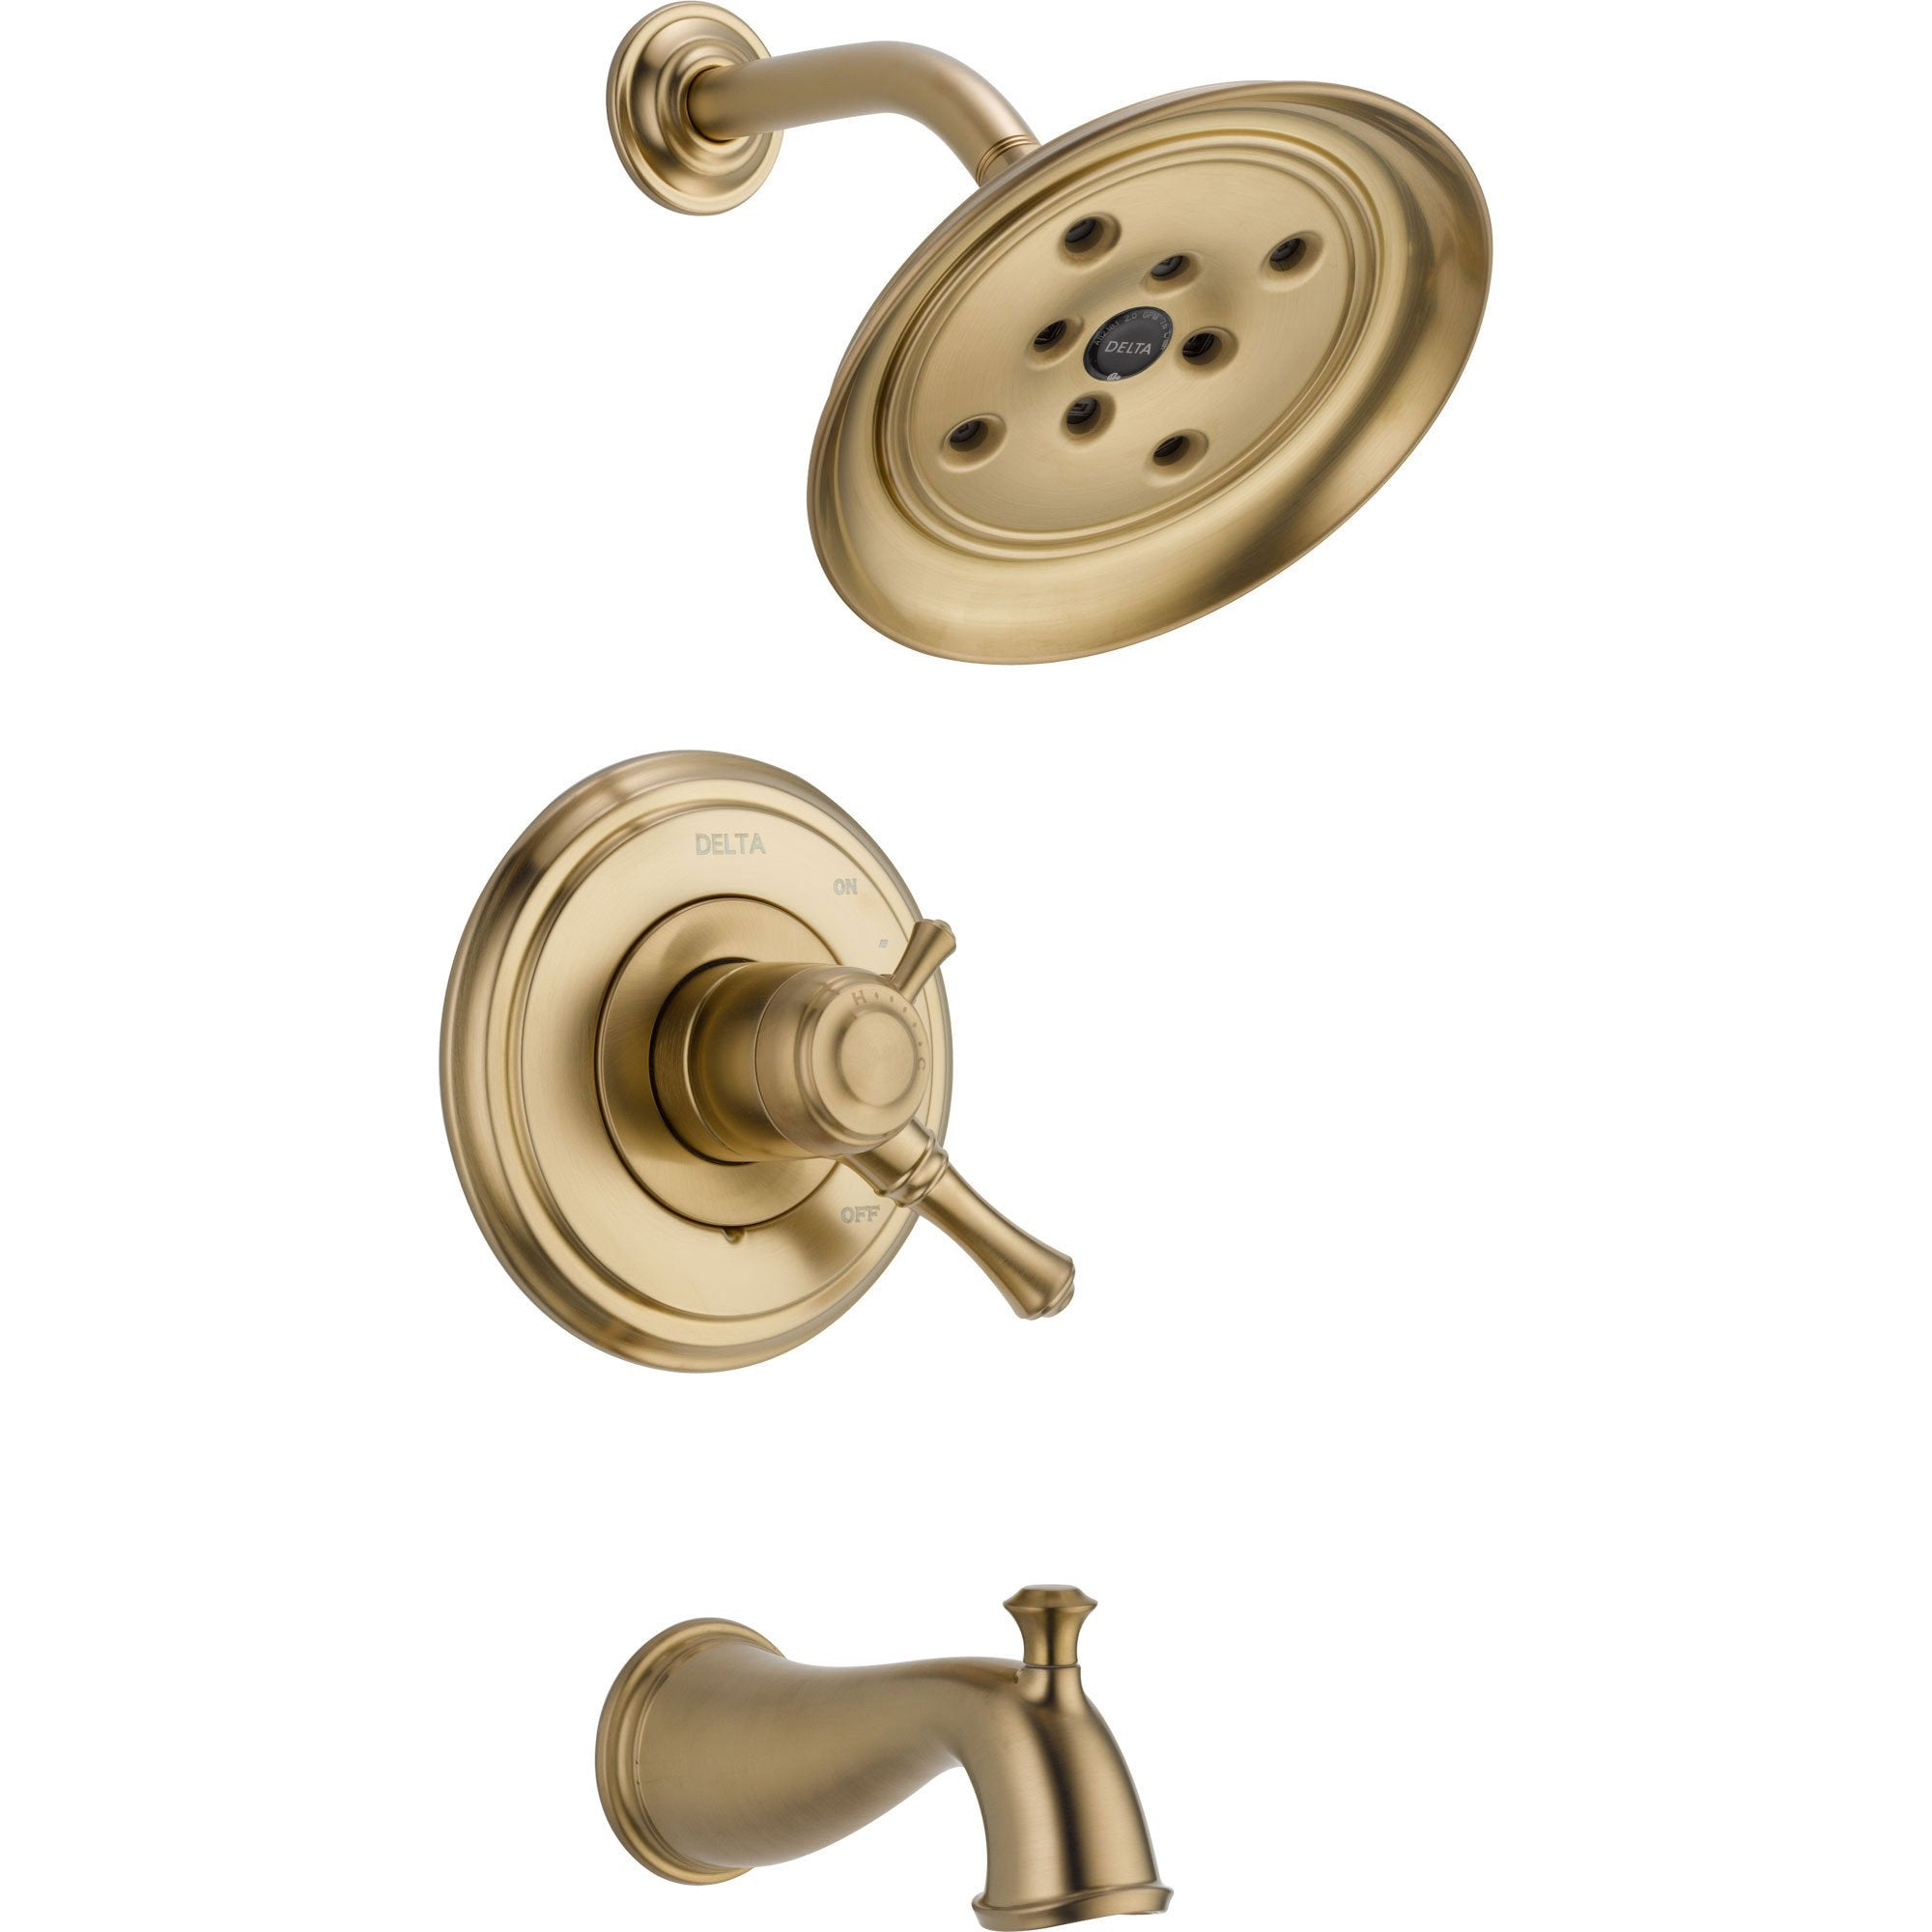 Delta Cassidy Champagne Bronze Temp/Volume Tub & Shower Faucet with Valve D413V